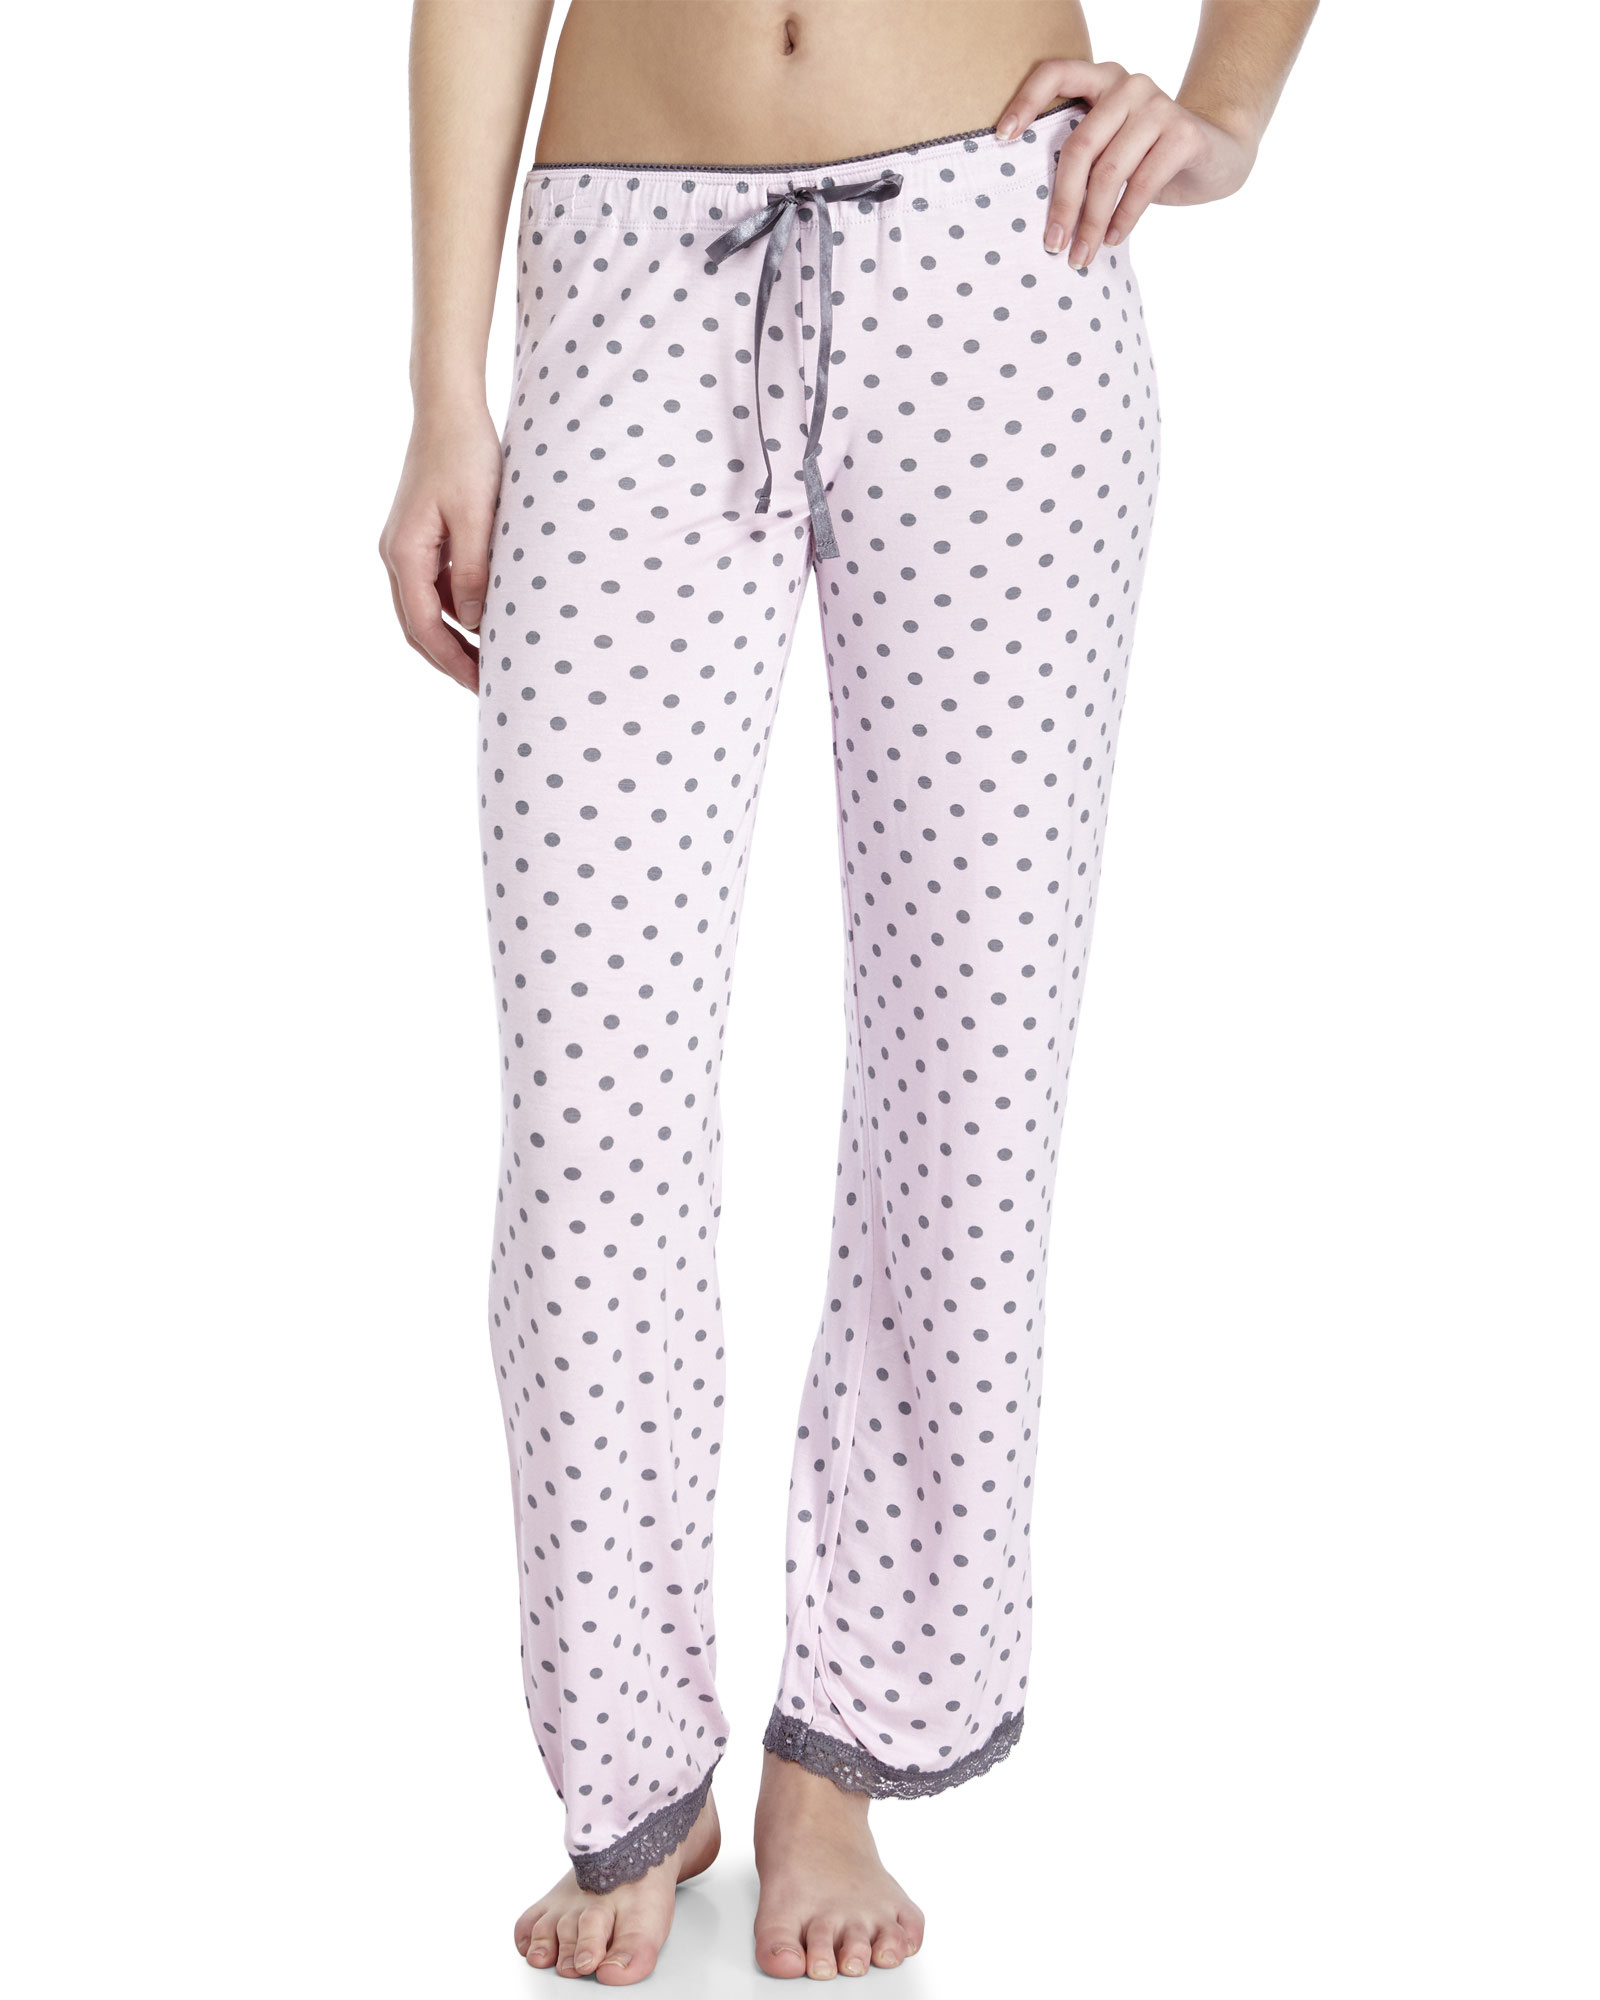 Lyst Pj Salvage Polka Dot Pajama Pants In Pink